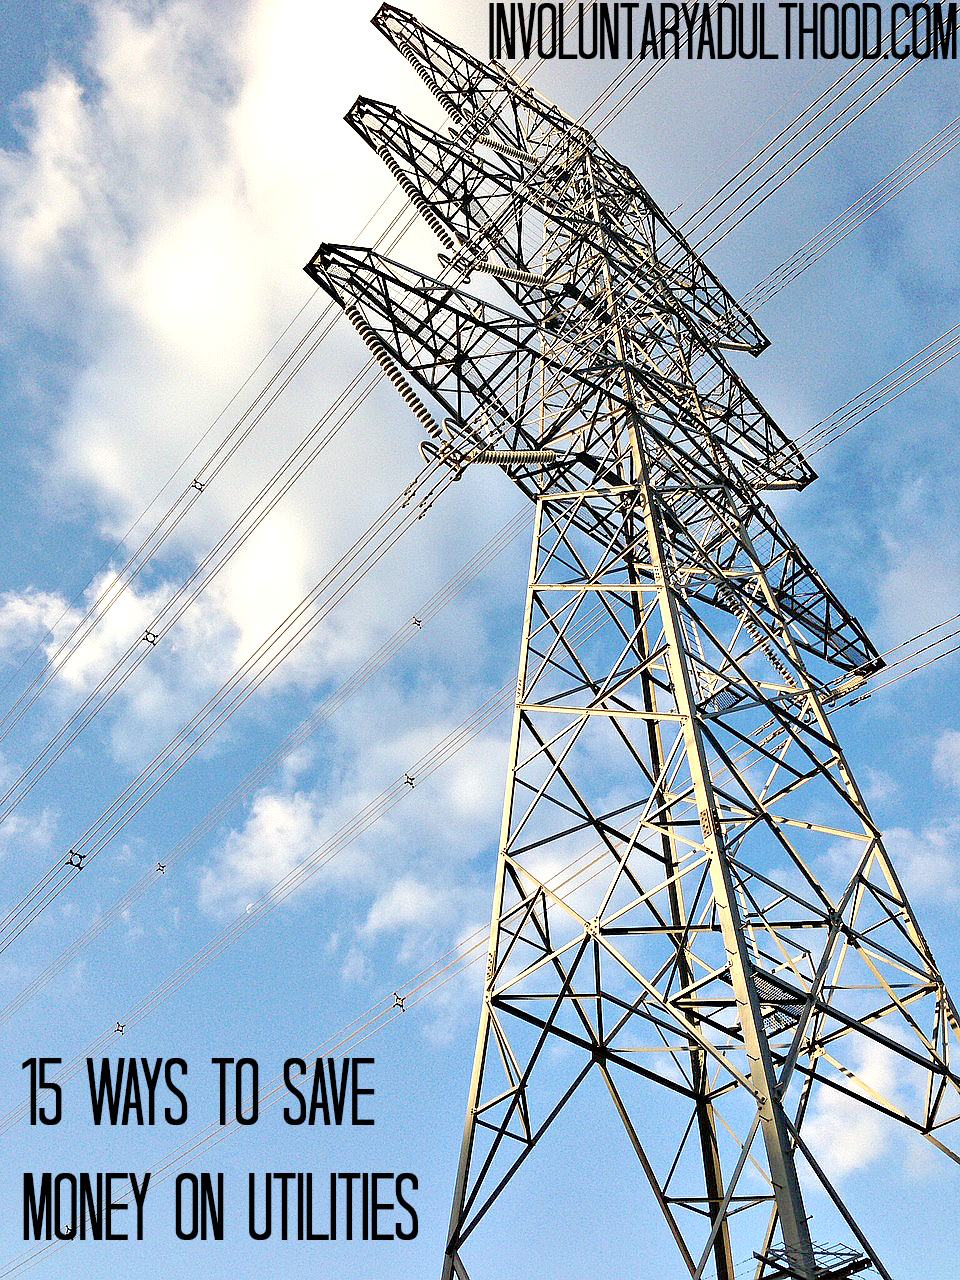 15 Ways to Save Money on Utilities